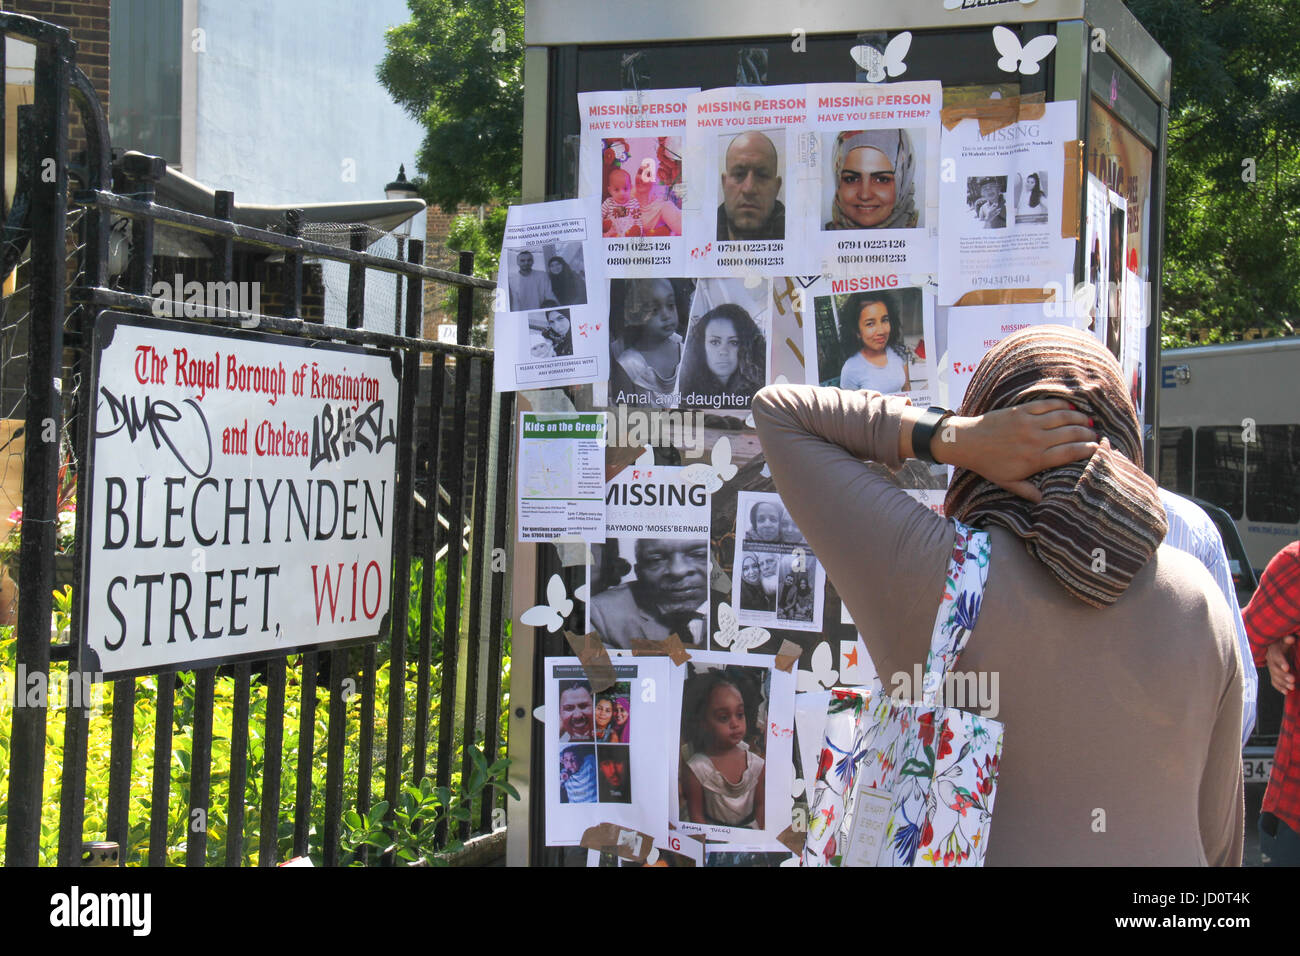 London, UK. 17th June 2017 - A woman reads through missing person posters on Blechynden Street following the Grenfell - Stock Image